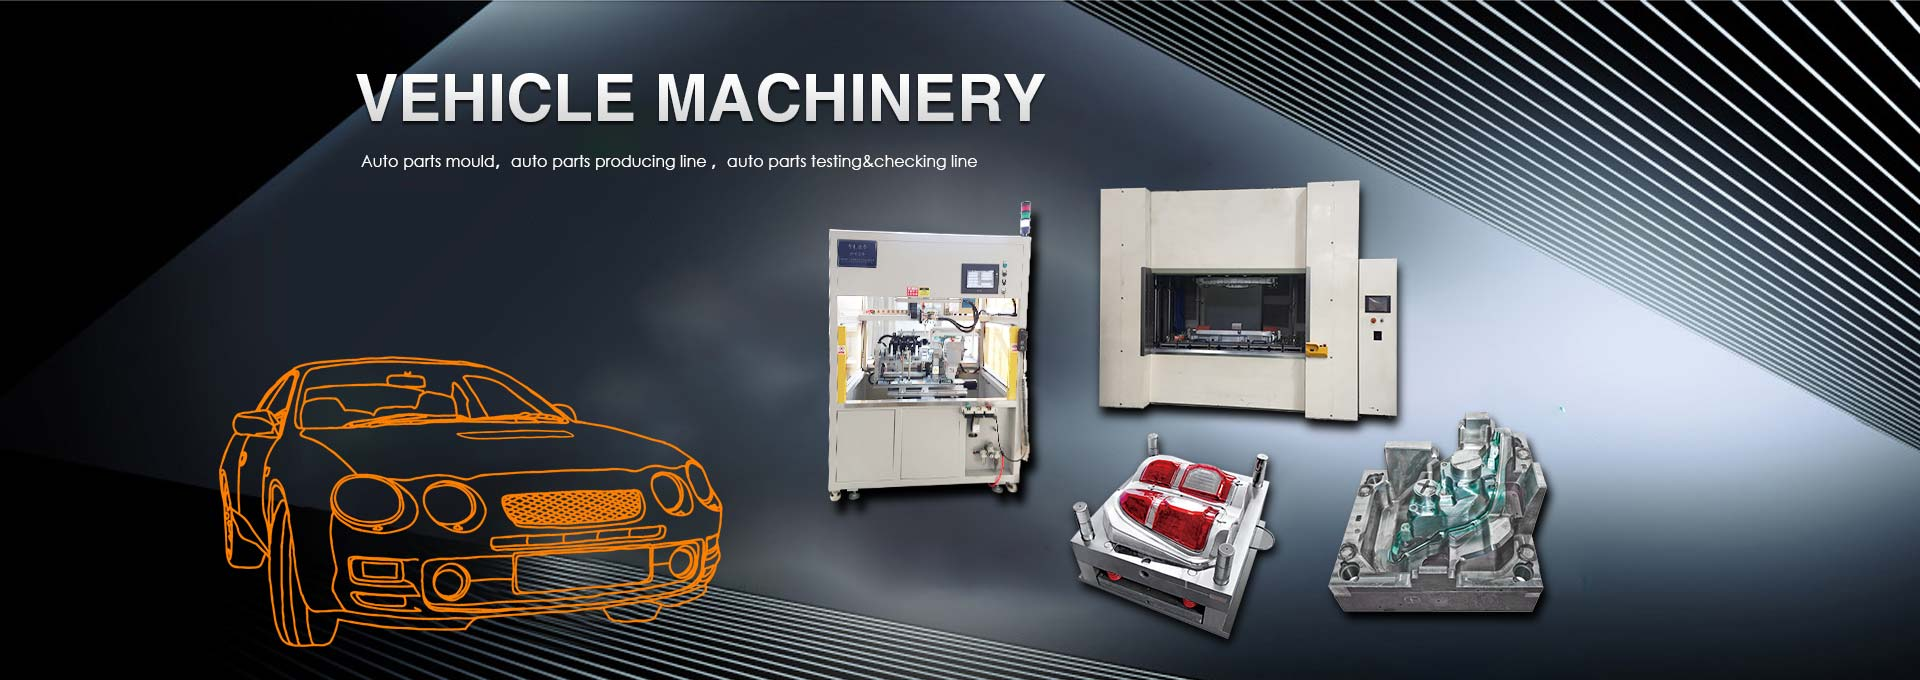 Vehicle Machinery